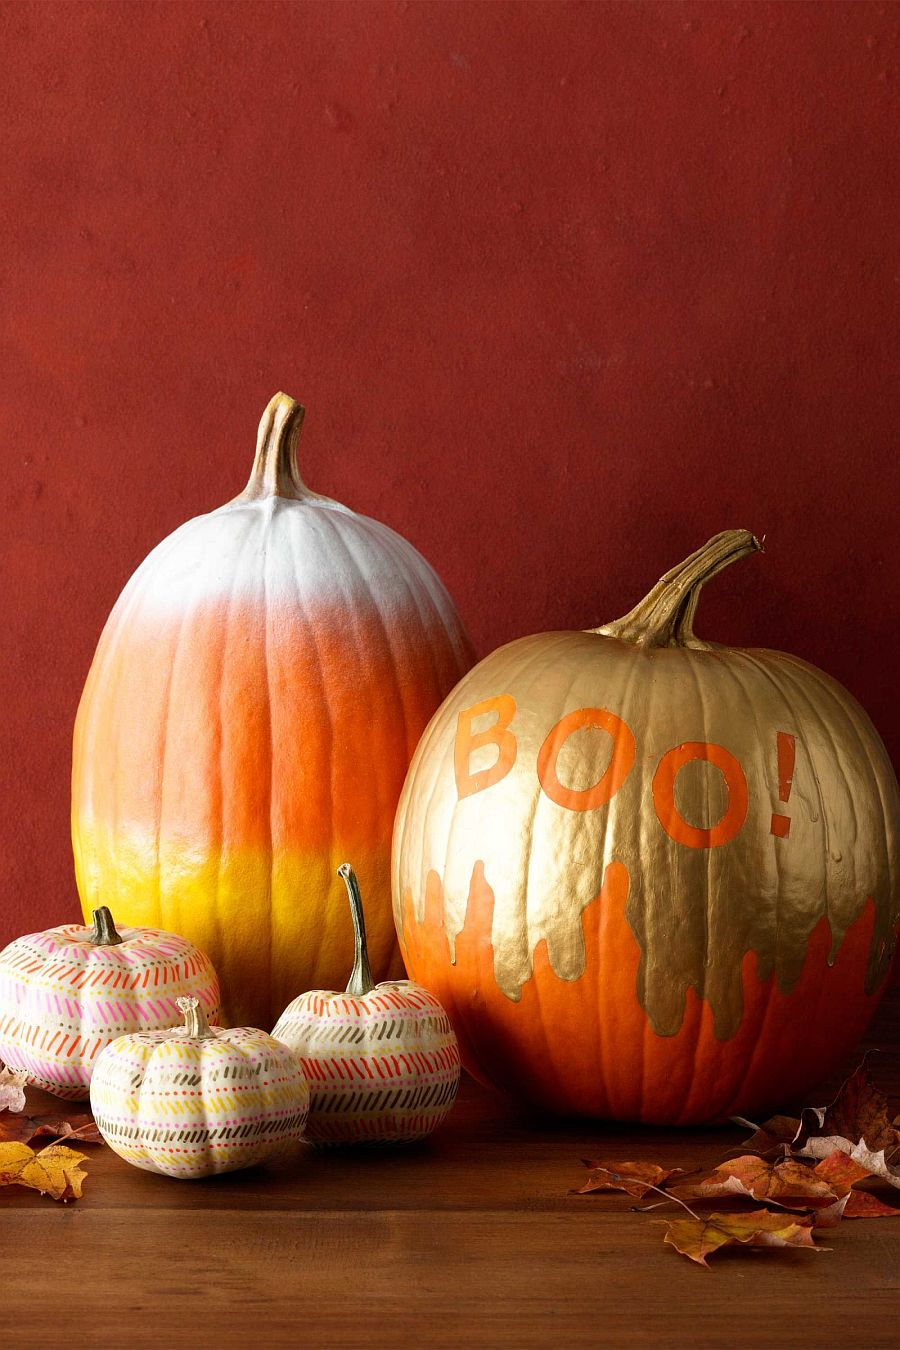 25 awesome painted pumpkin ideas for halloween and beyond Funny pumpkin painting ideas